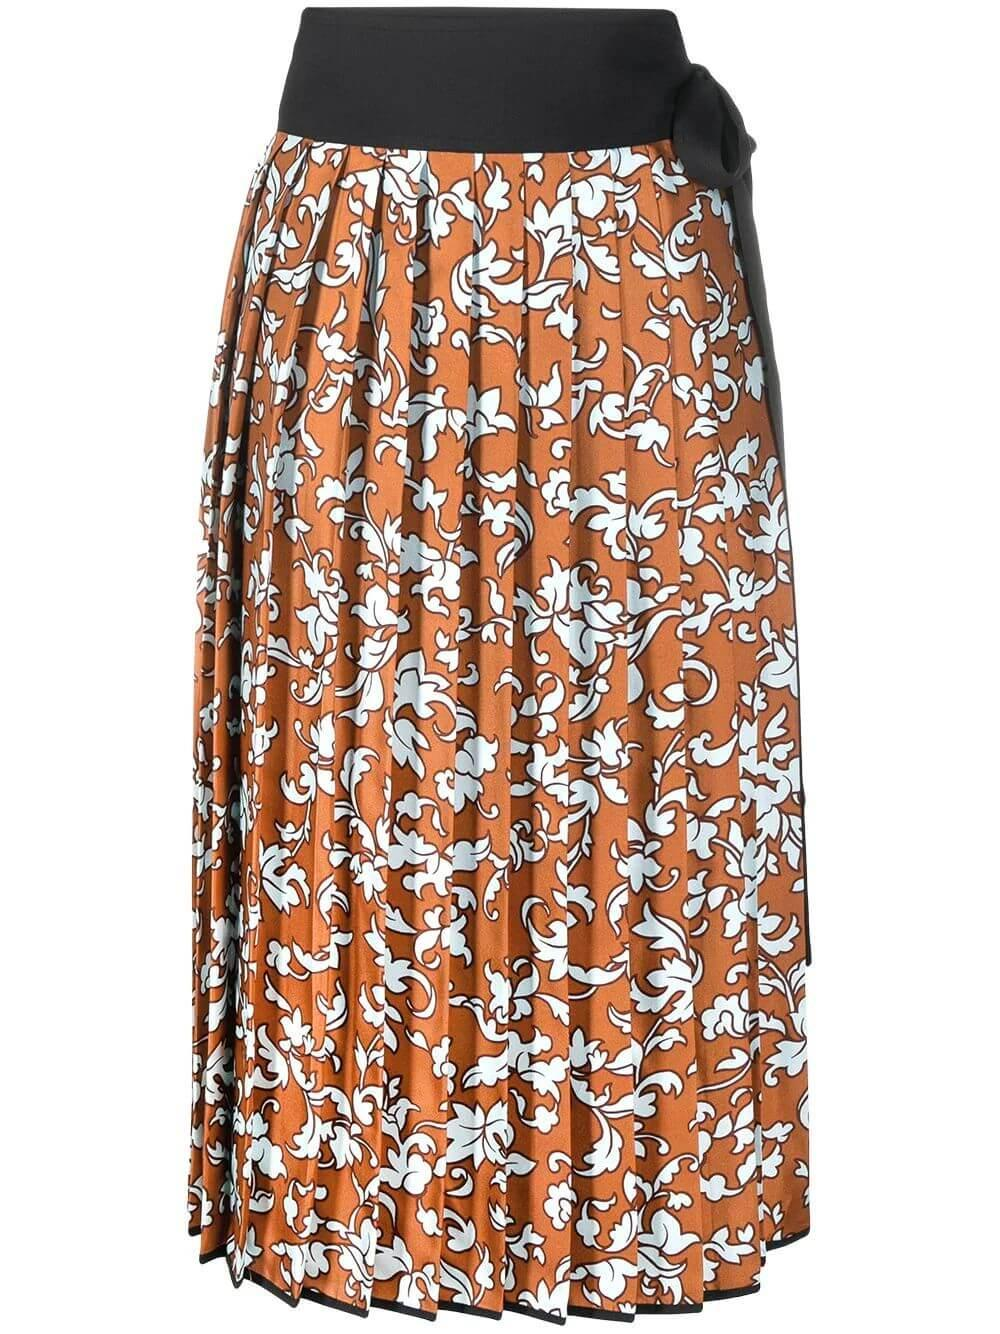 Baroque Printed Pleated Skirt Item # 78769-200